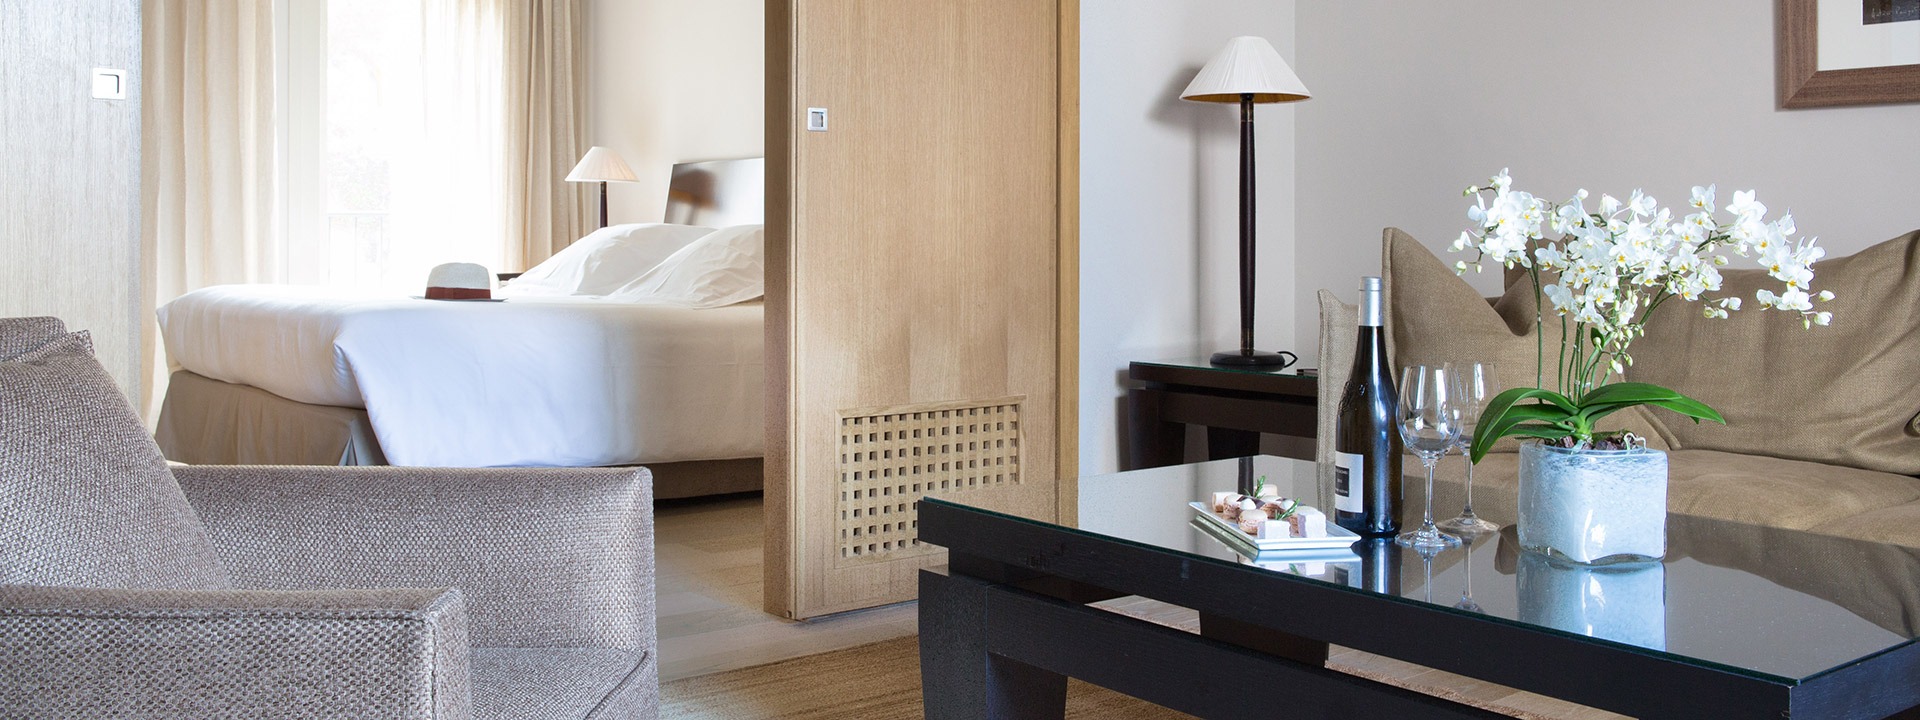 Suite 2 chambres Mer Citadelle